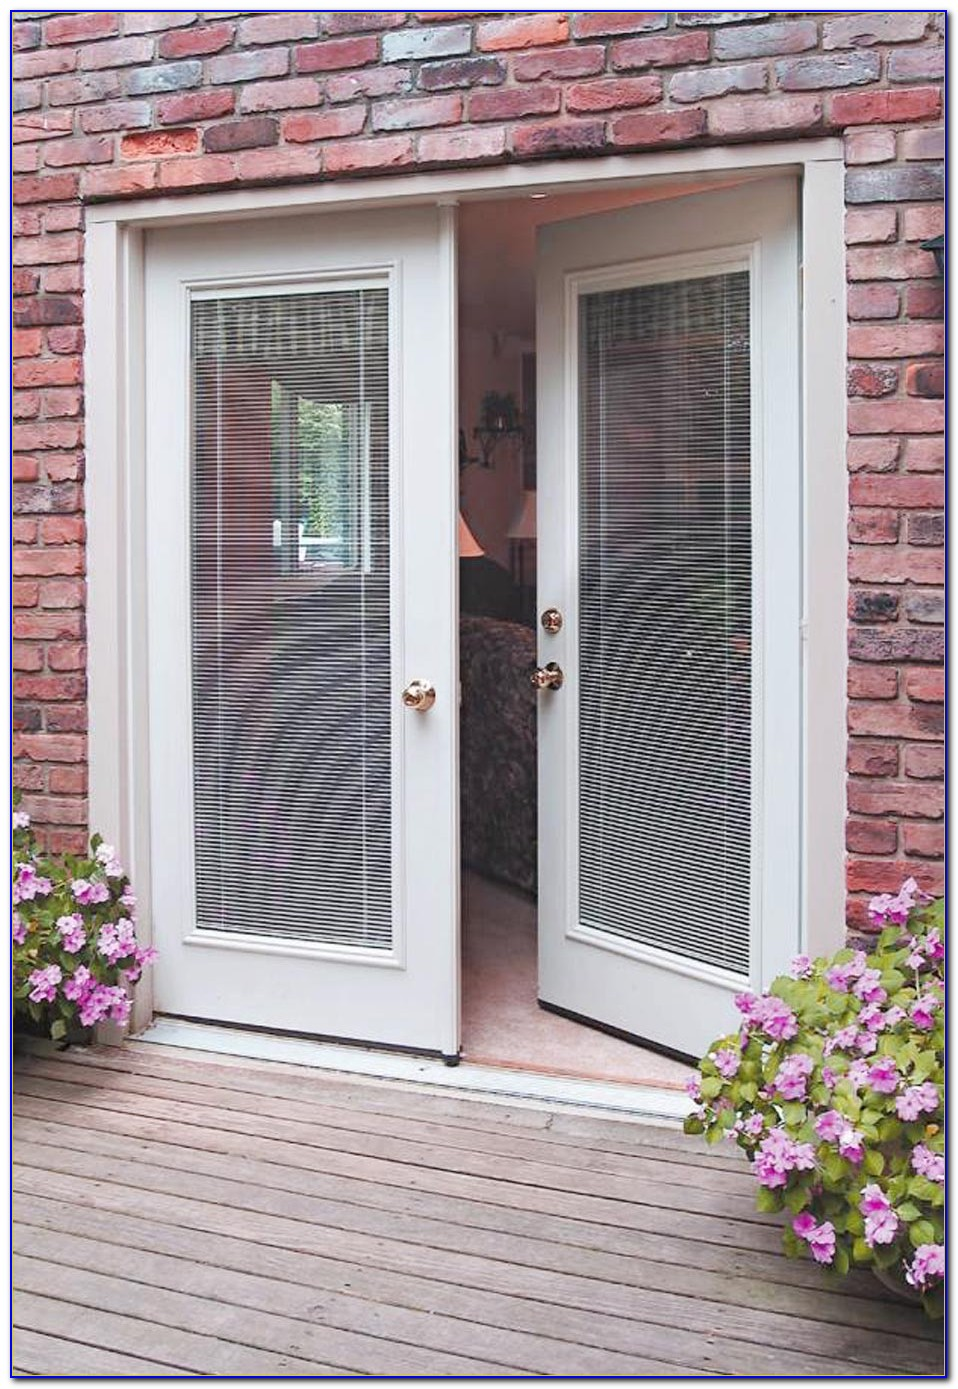 Anderson French Patio Doors With Built In Blinds